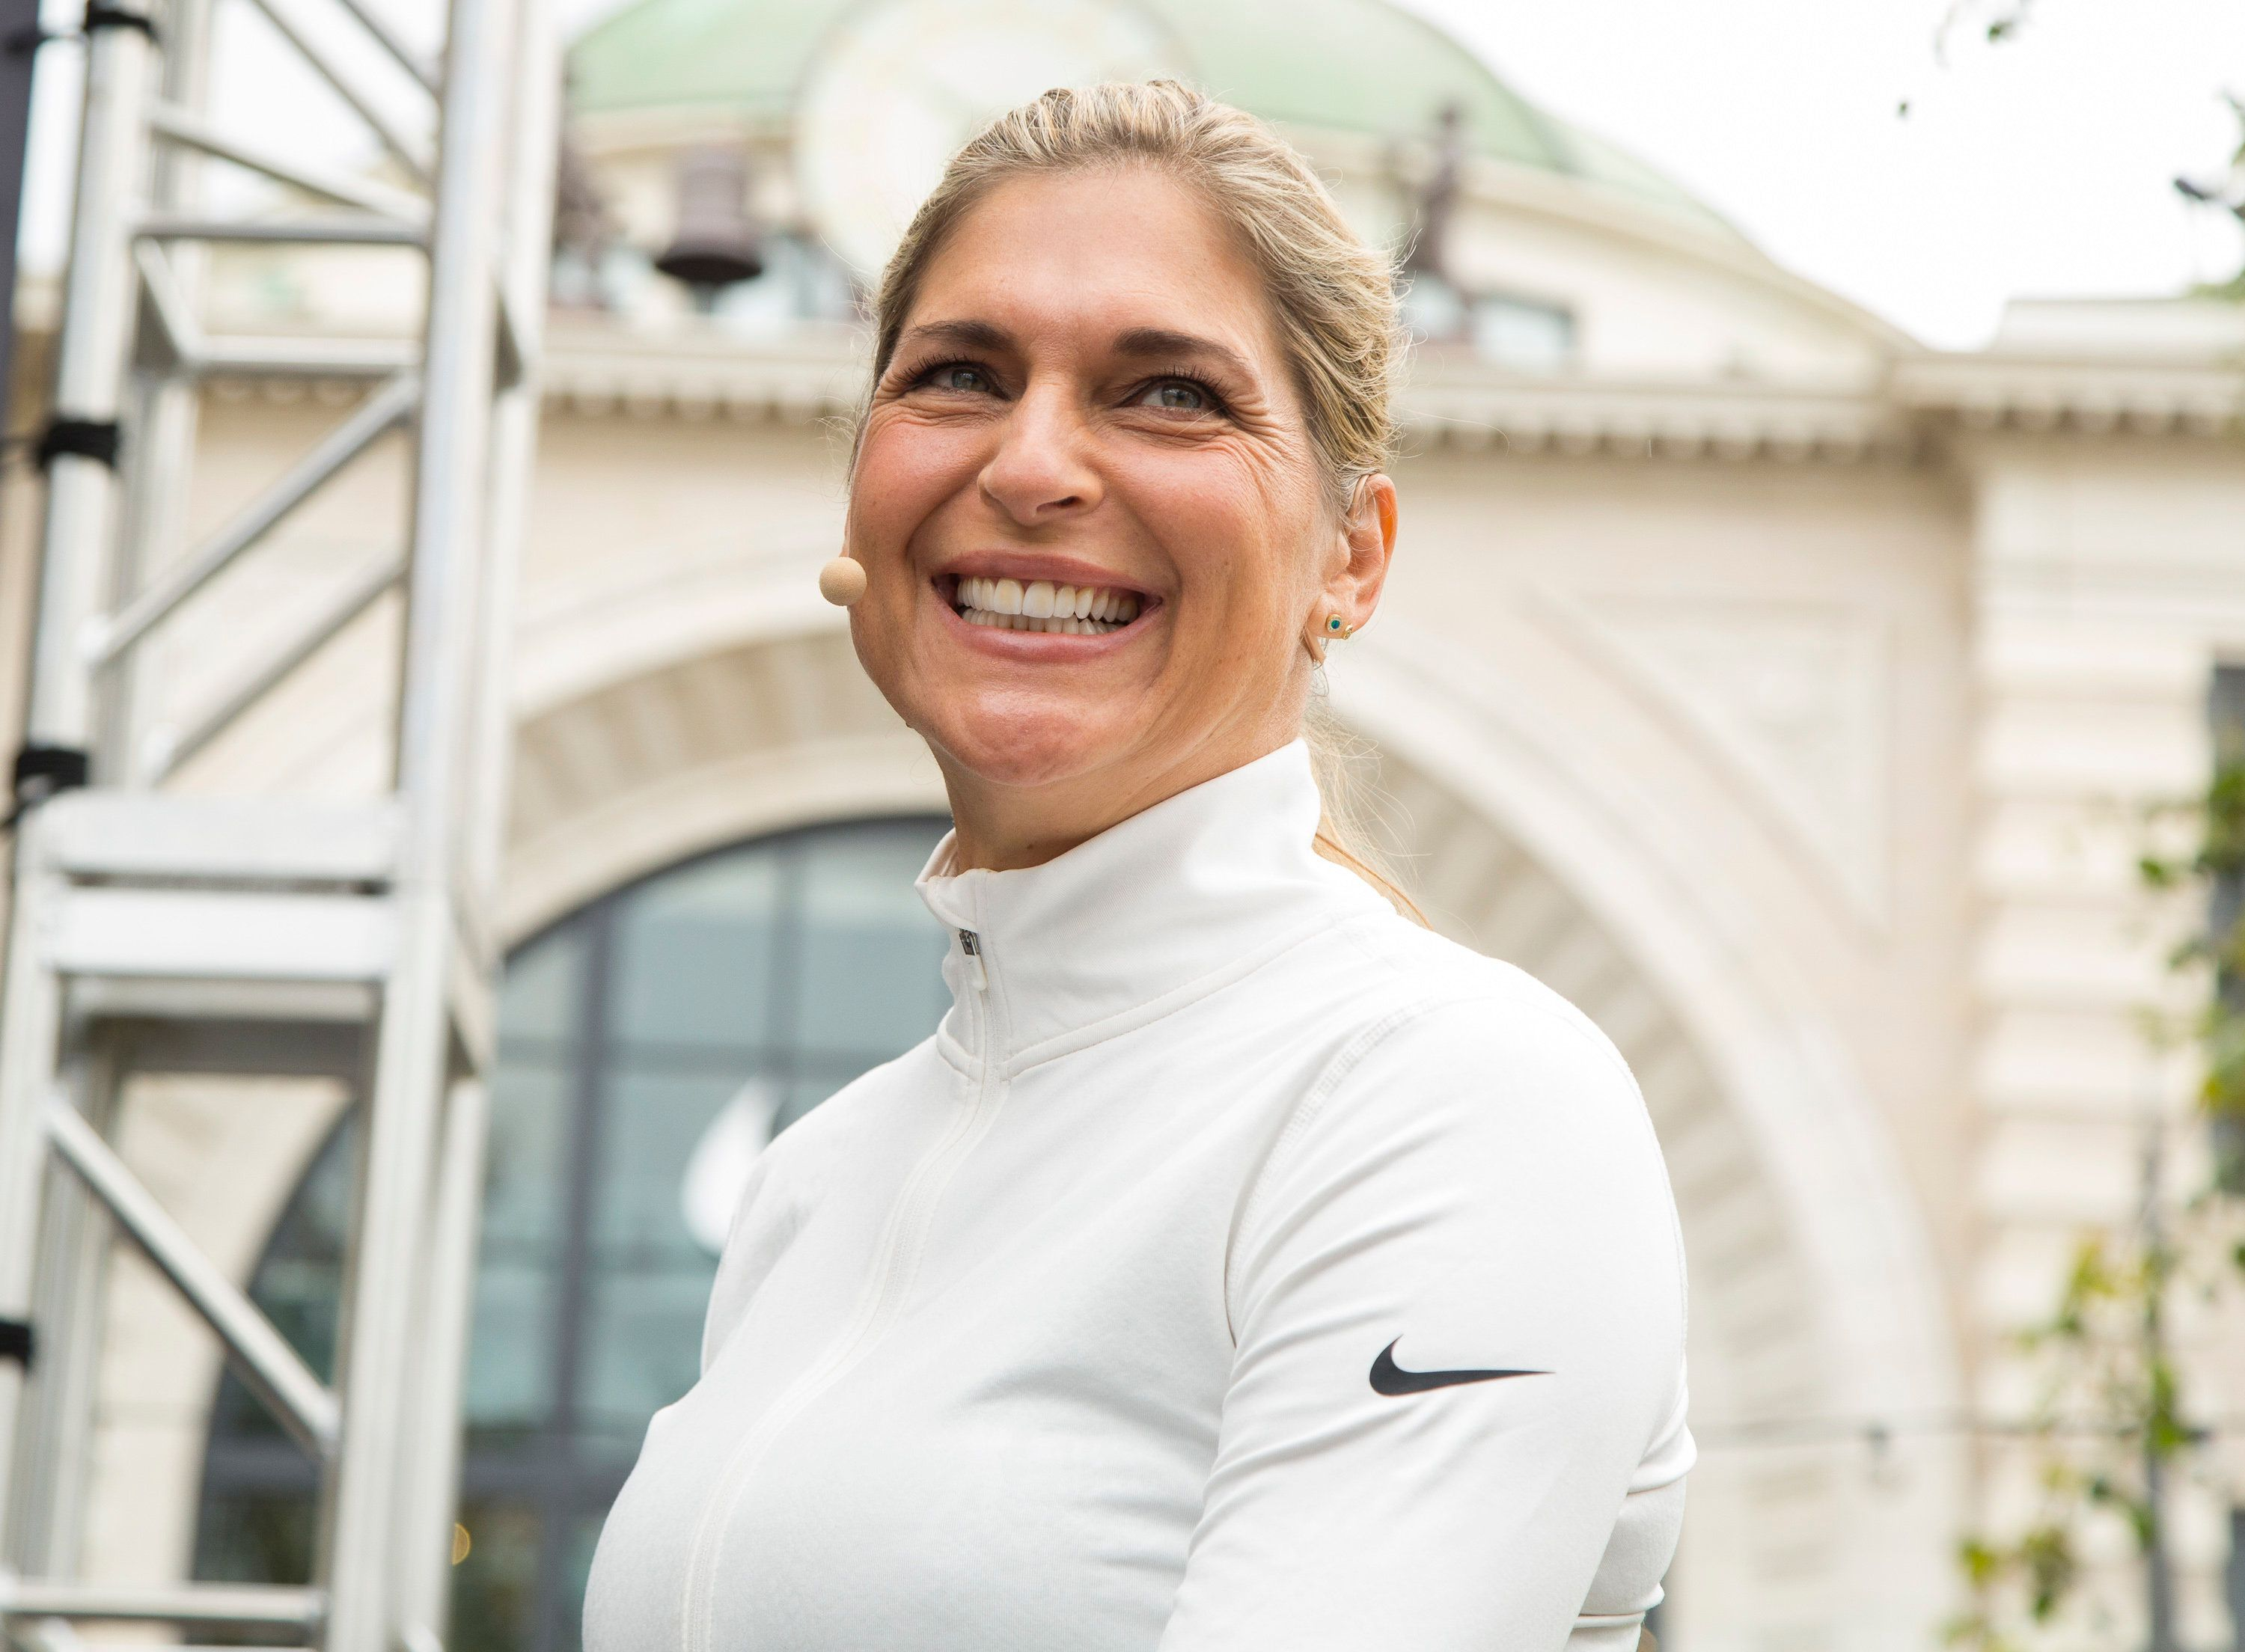 LOS ANGELES, CALIFORNIA - APRIL 09:  Gabrielle Reece attends NBC's New Trans-Formative Competition show 'Strong' Pop Up at The Grove on April 9, 2016 in Los Angeles, California.  (Photo by Vincent Sandoval/WireImage)